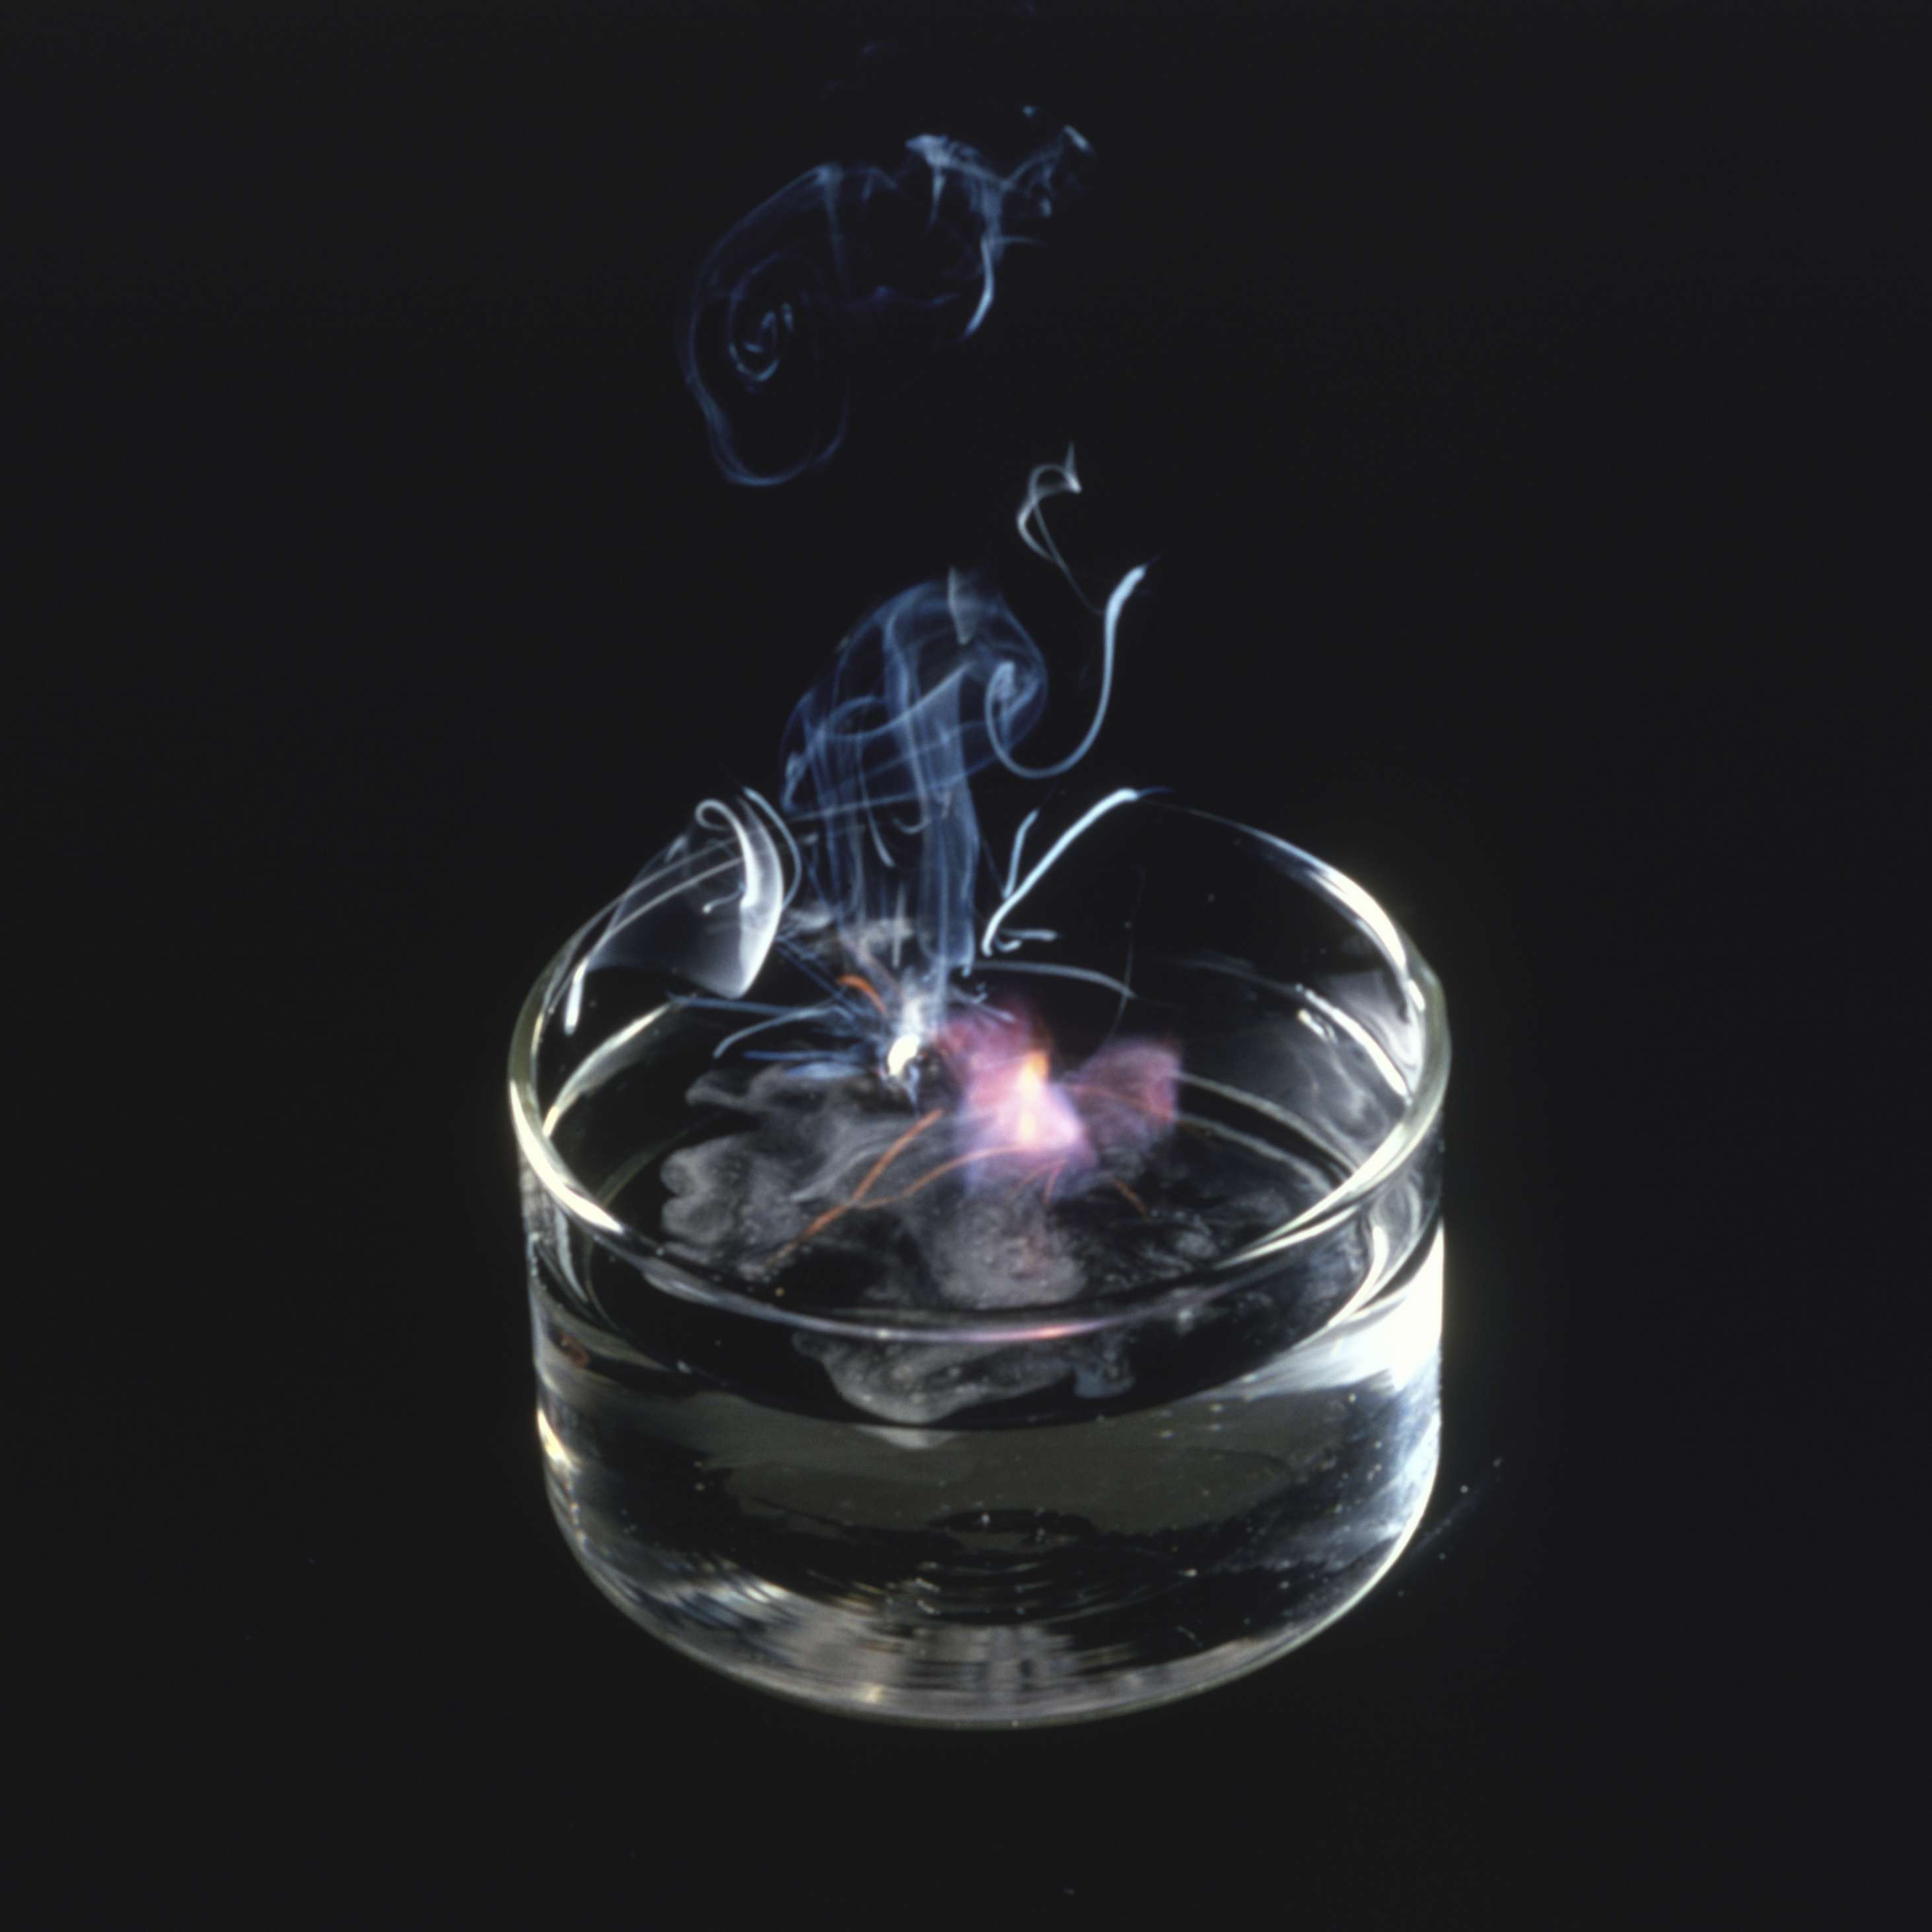 sodium reacting in a container of water